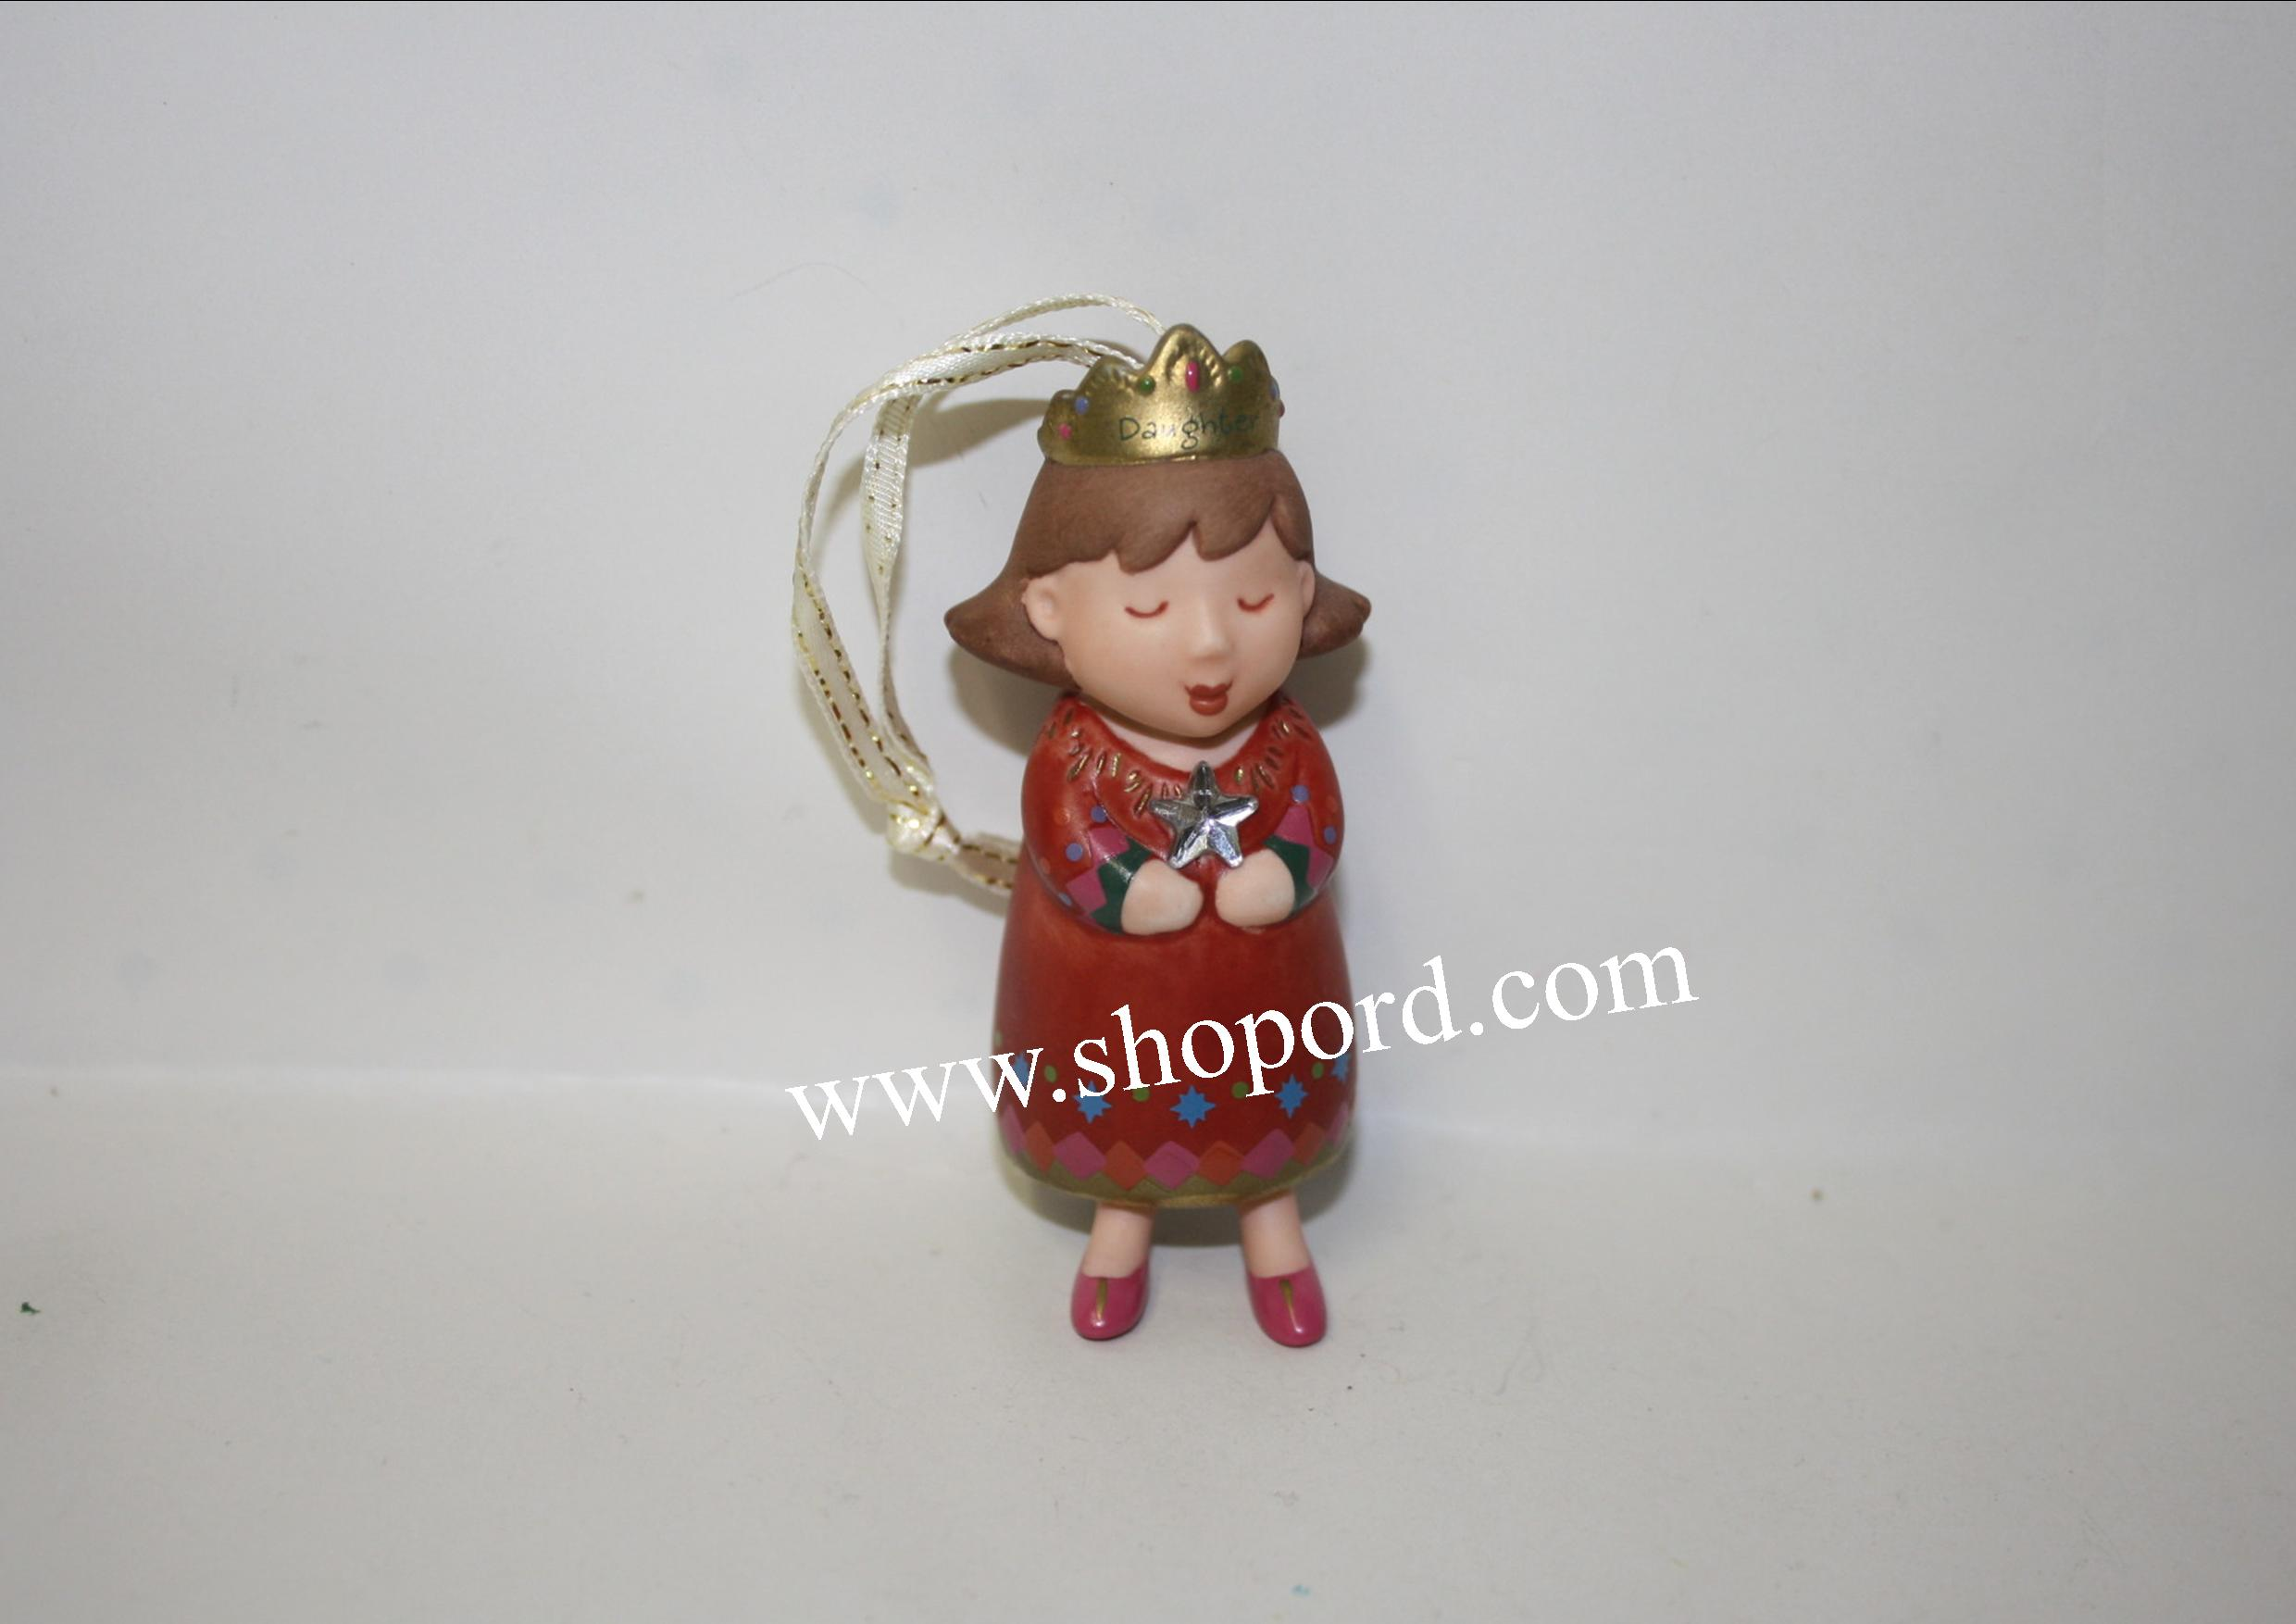 Hallmark 2000 Daughter Ornament QX8081